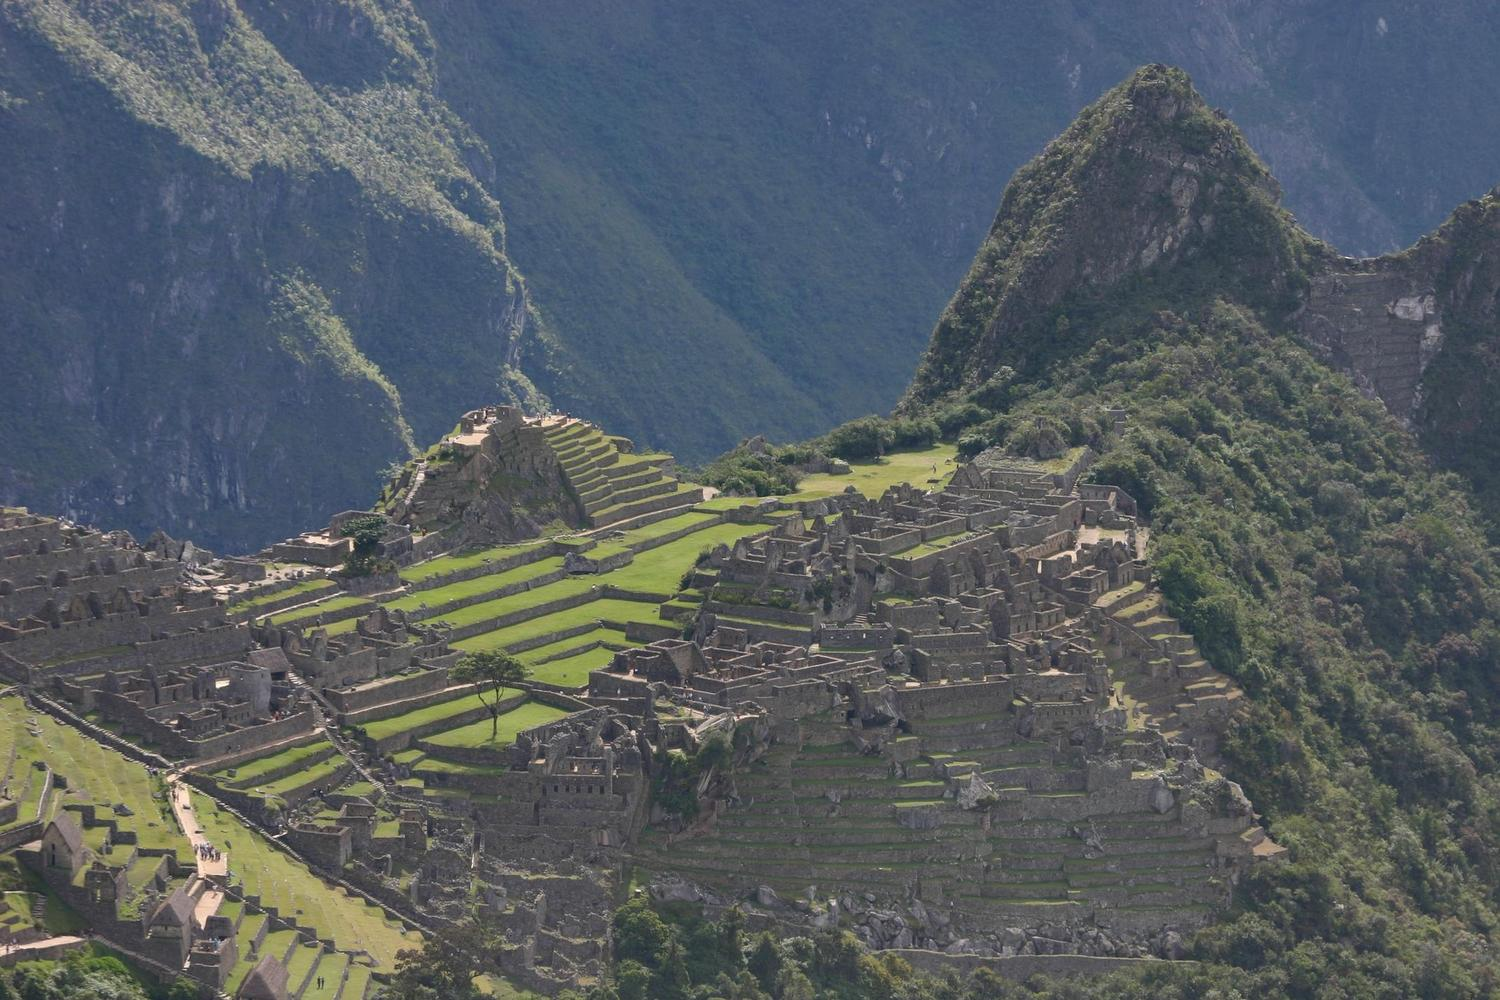 Your first views of Machu Picchu from the Inca Trail